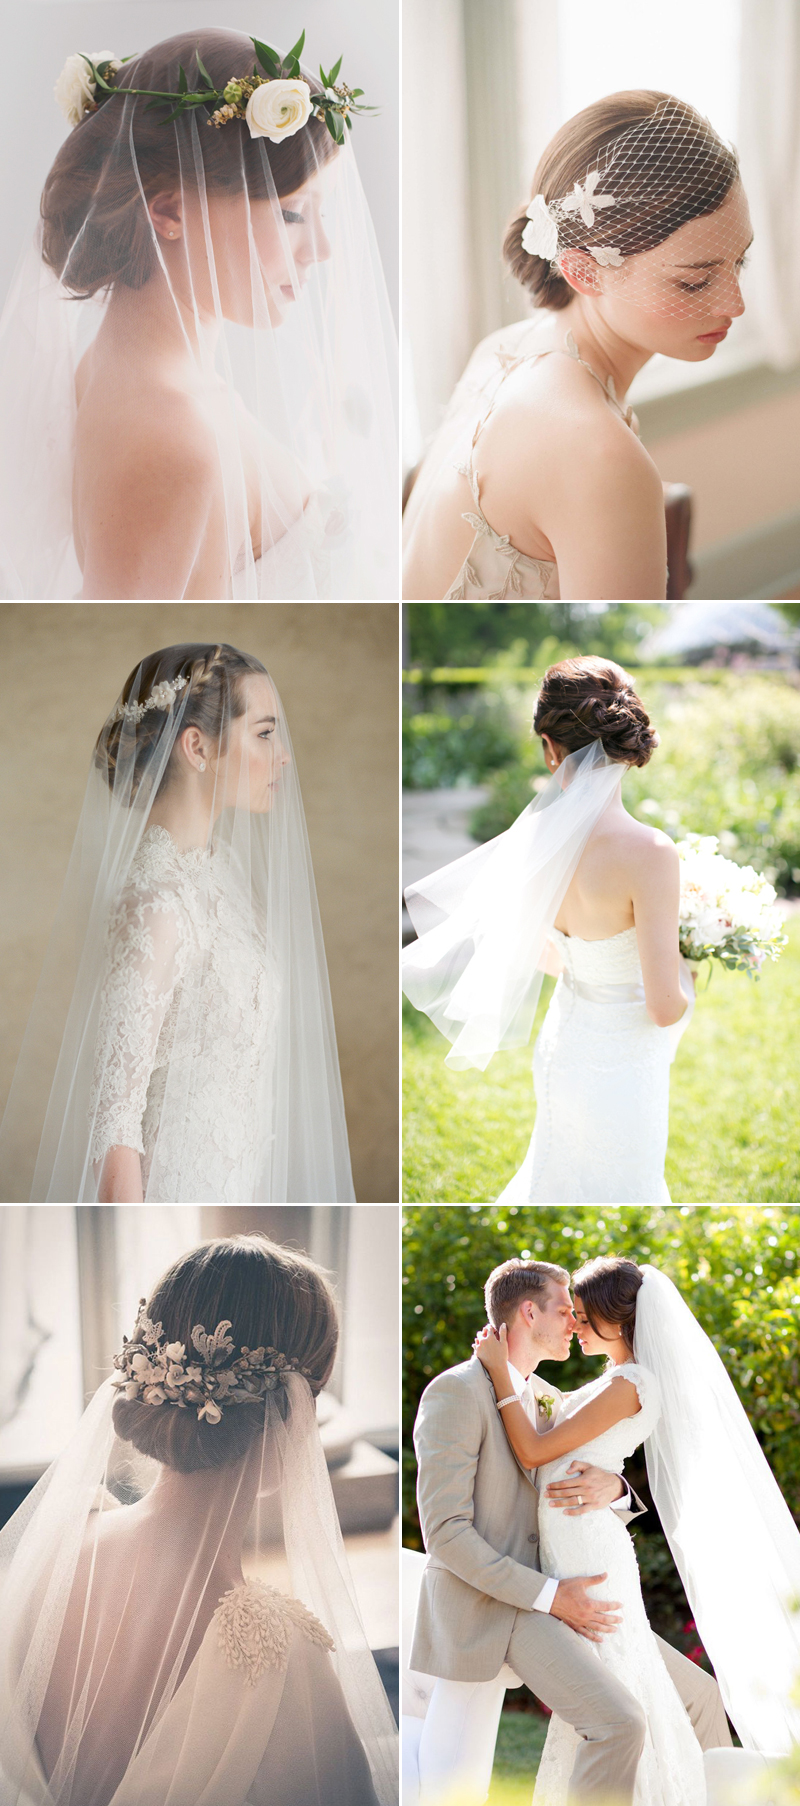 5 Chic Bridal Hairstyles That Look Good With Veils